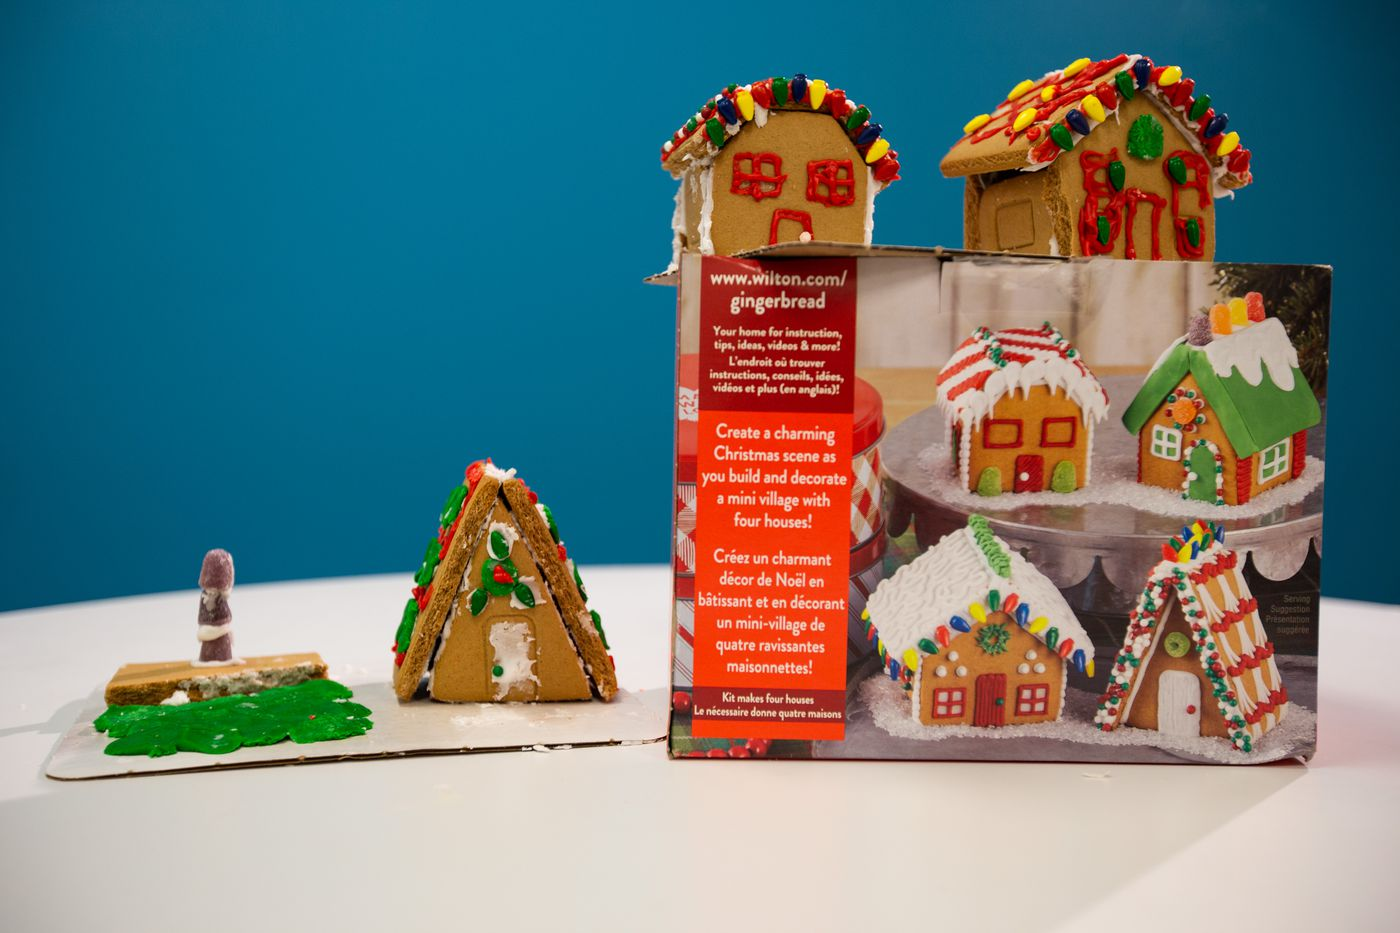 Christmas Gingerbread House Kit.How To Build Your Best Gingerbread House This Holiday Season